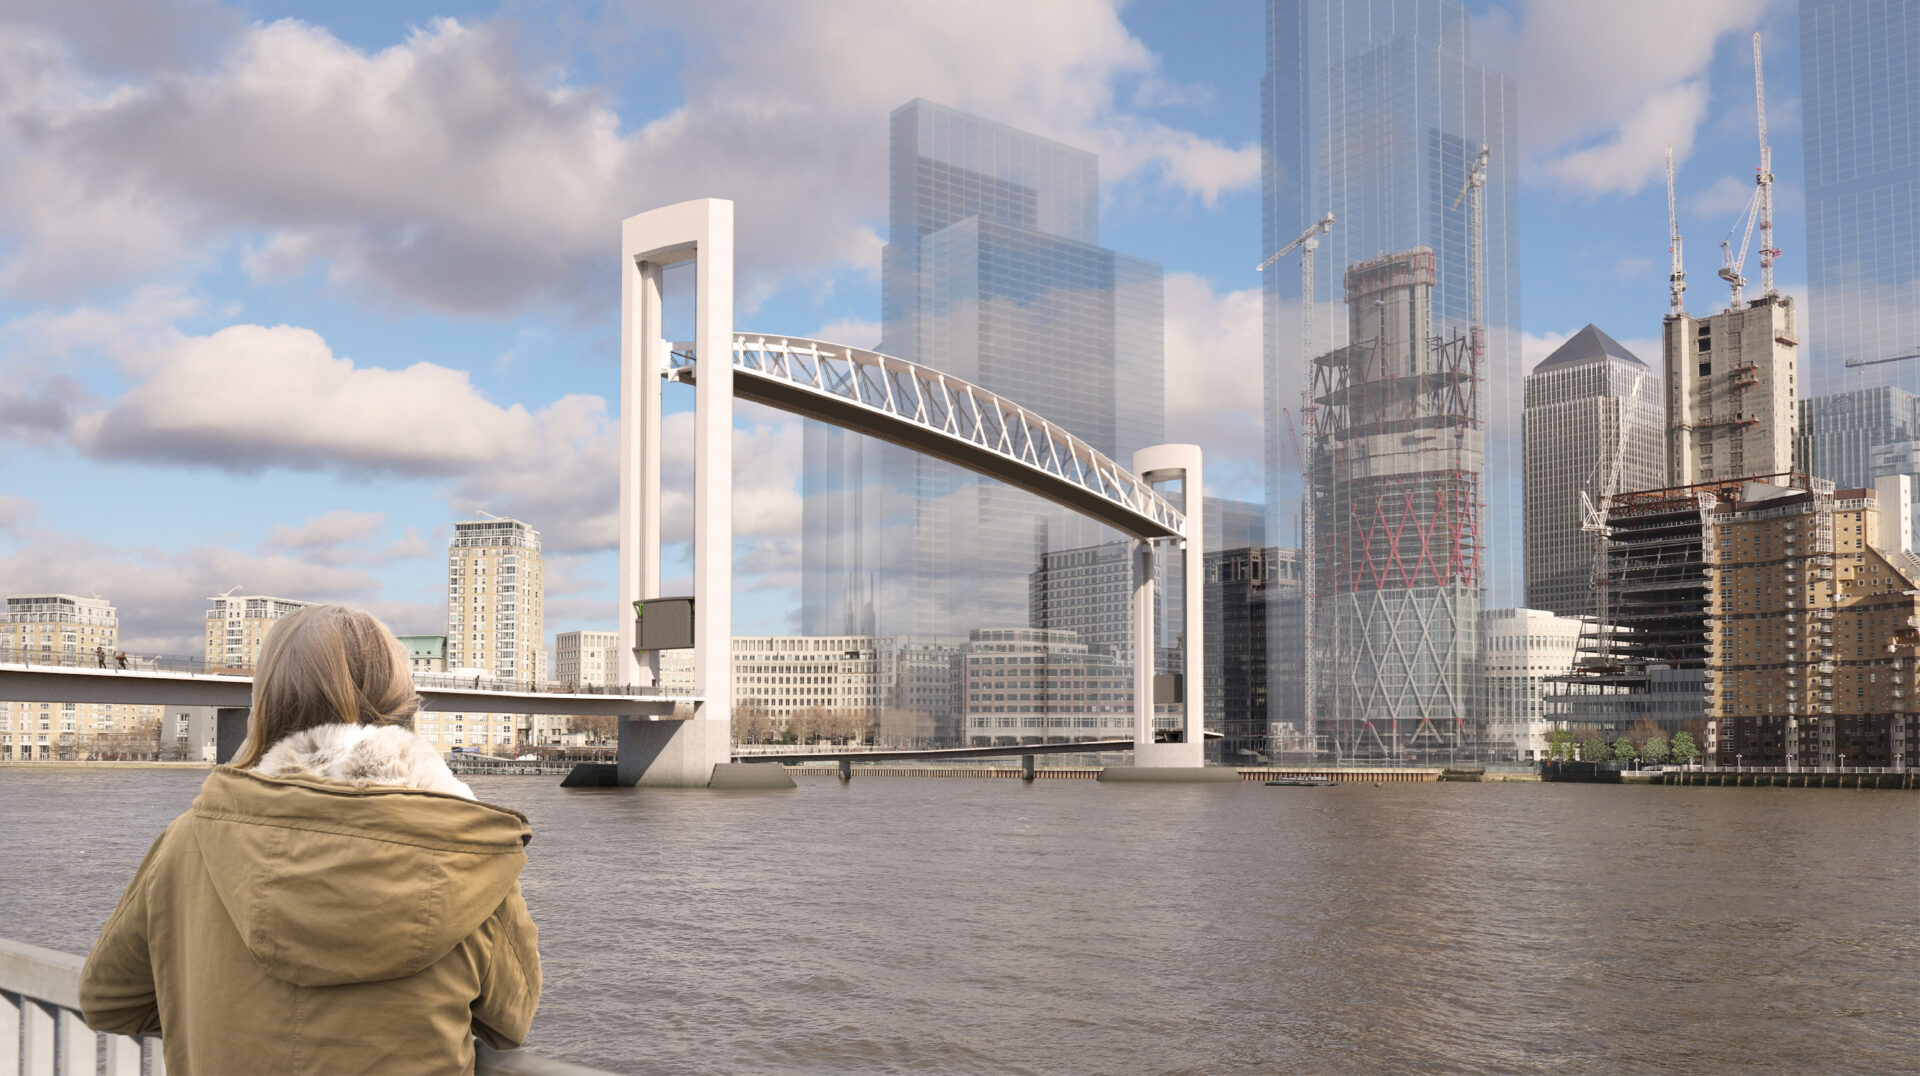 Large lifting Bridge in Canary Wharf over River Thames looking towards city